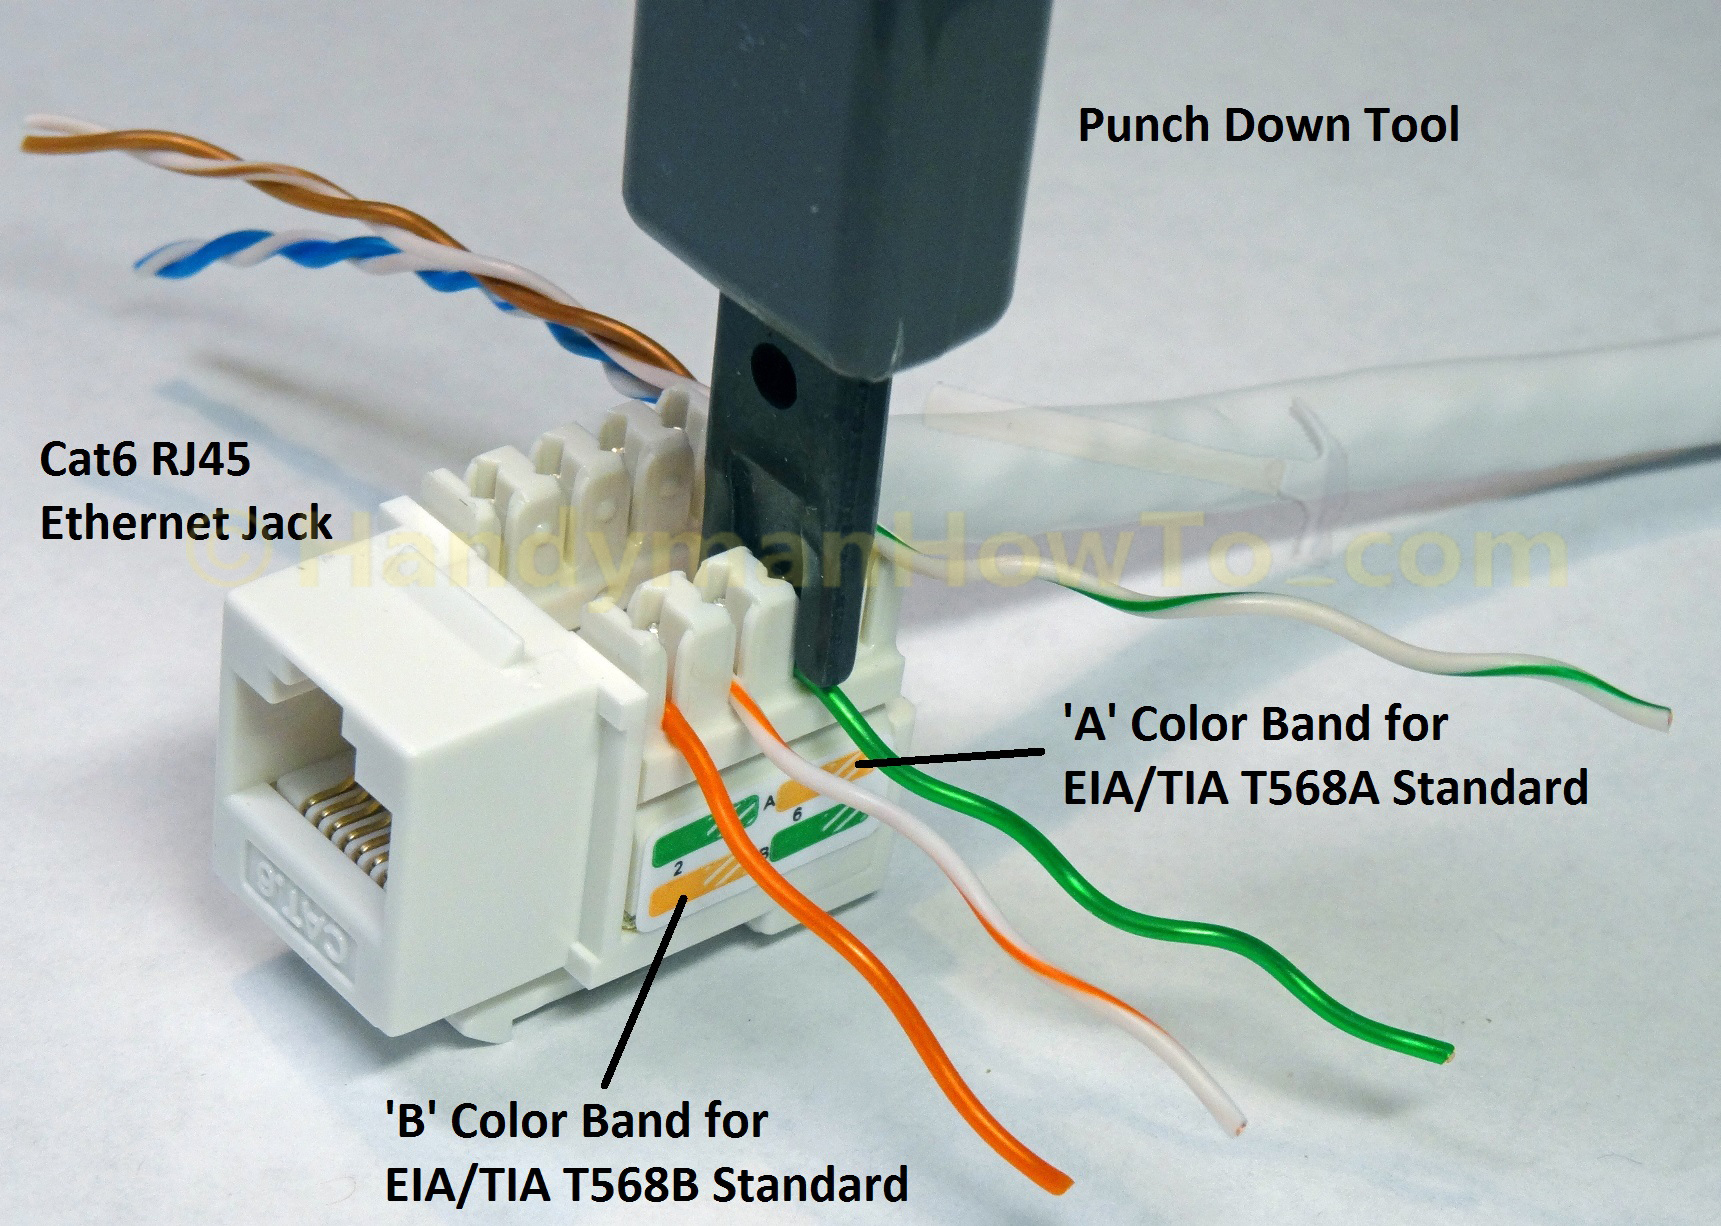 bt plug rj11 wiring diagram ow 5149  telephone cable color code chart on diagram of cat6 rj45  chart on diagram of cat6 rj45